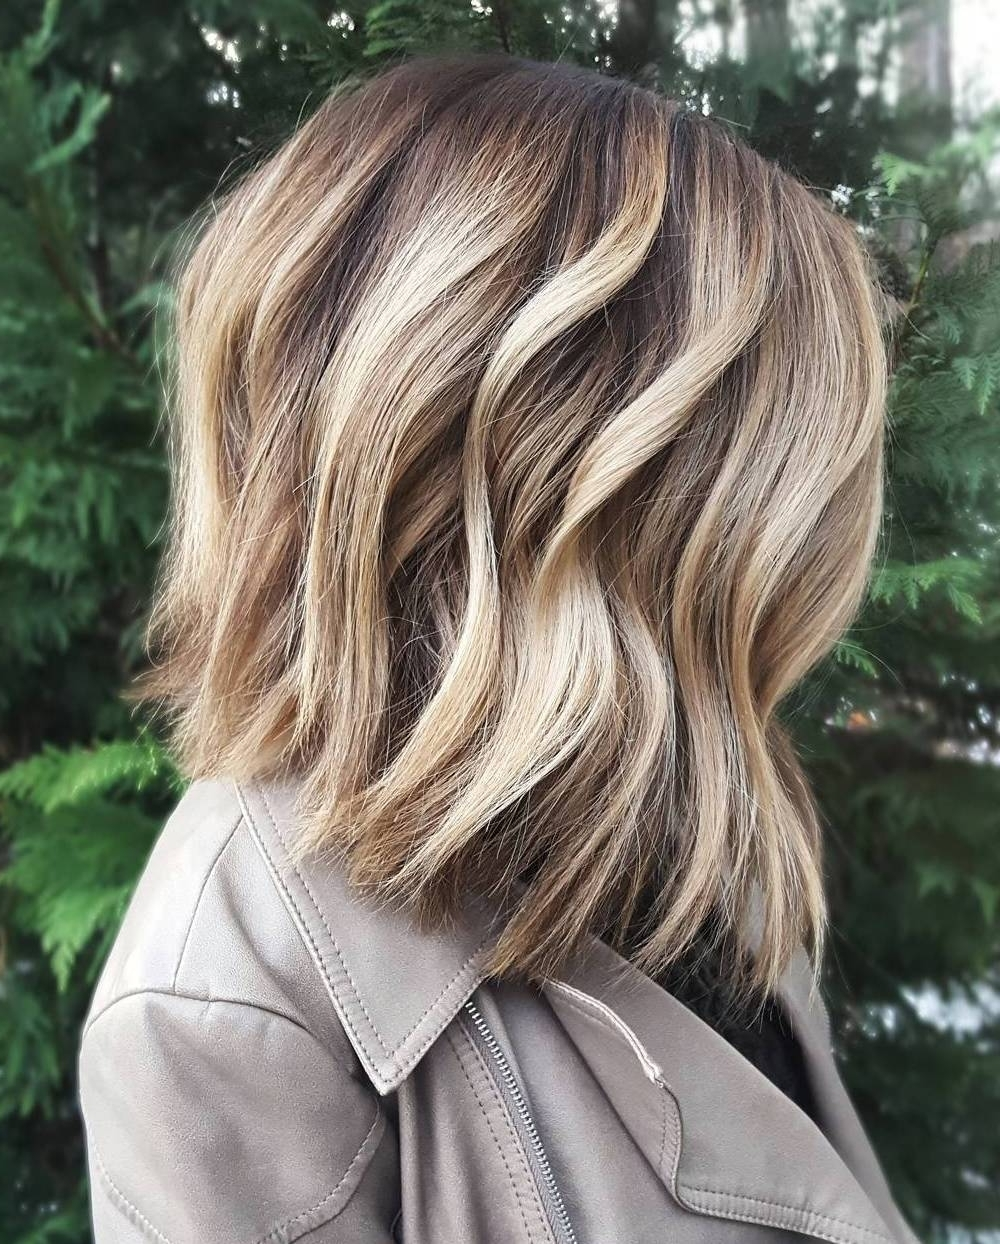 20 Dirty Blonde Hair Ideas That Work On Everyone Throughout Fashionable Dirty Blonde Hairstyles With Subtle Highlights (View 1 of 20)